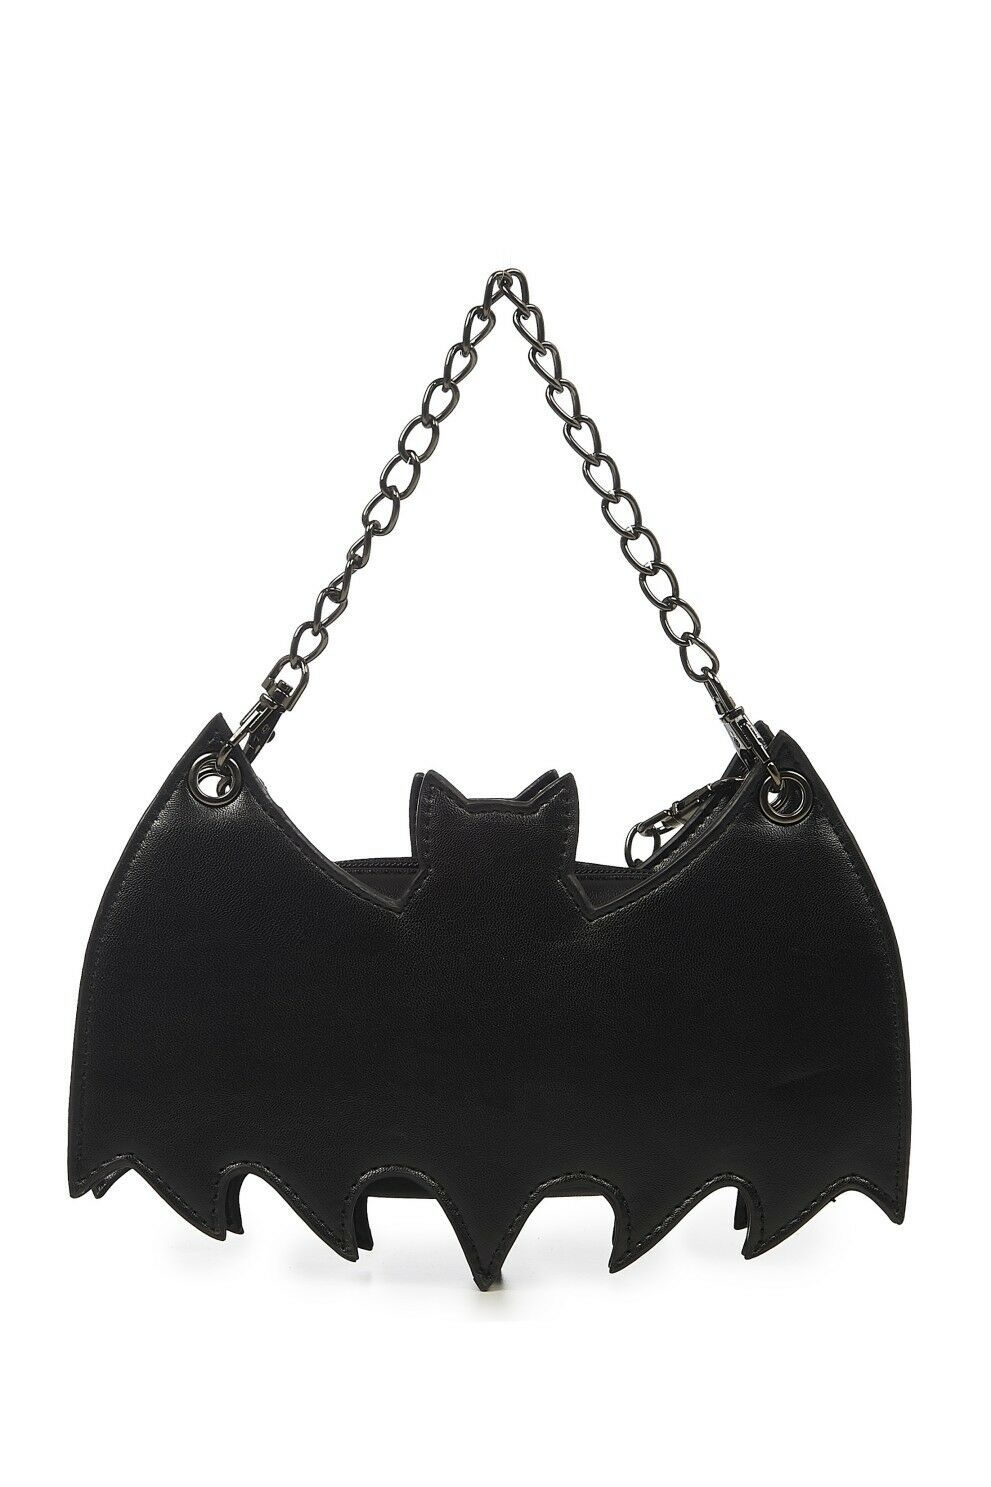 Primary image for Lost Queen Bat Celebration Halloween Gothic Punk Handbag Backpack BG7267